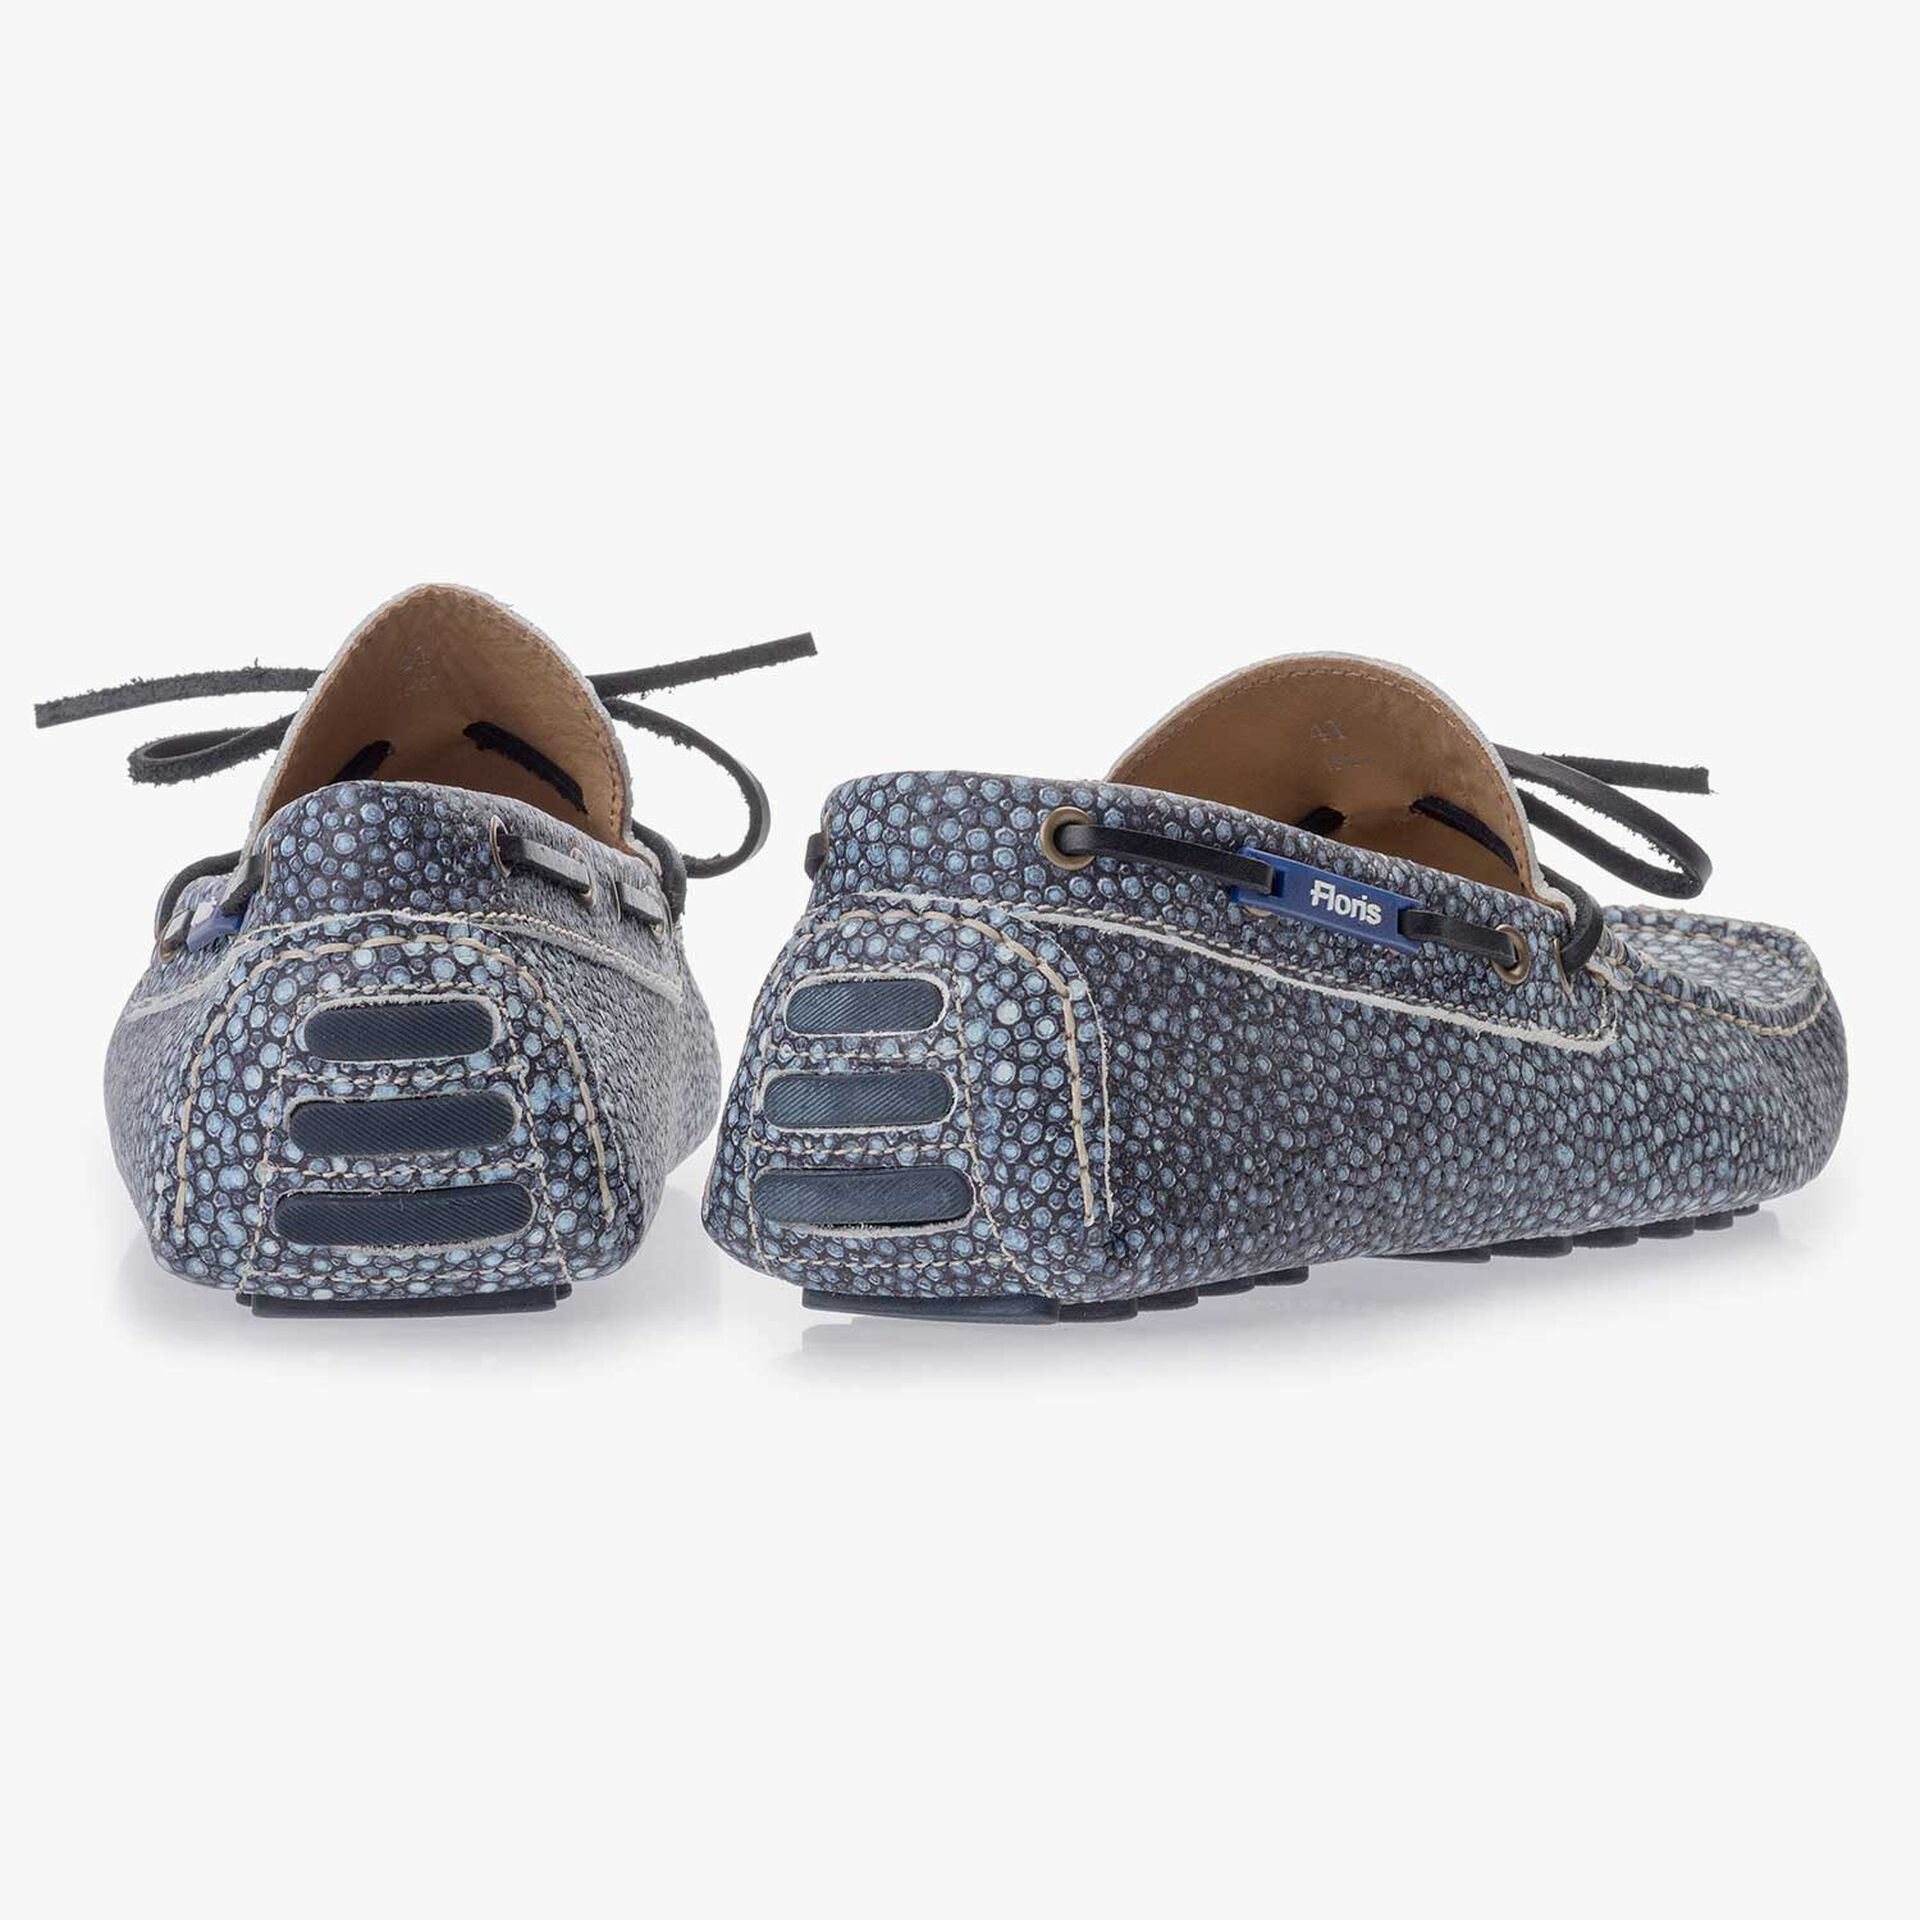 Blue moccasin with rye pattern